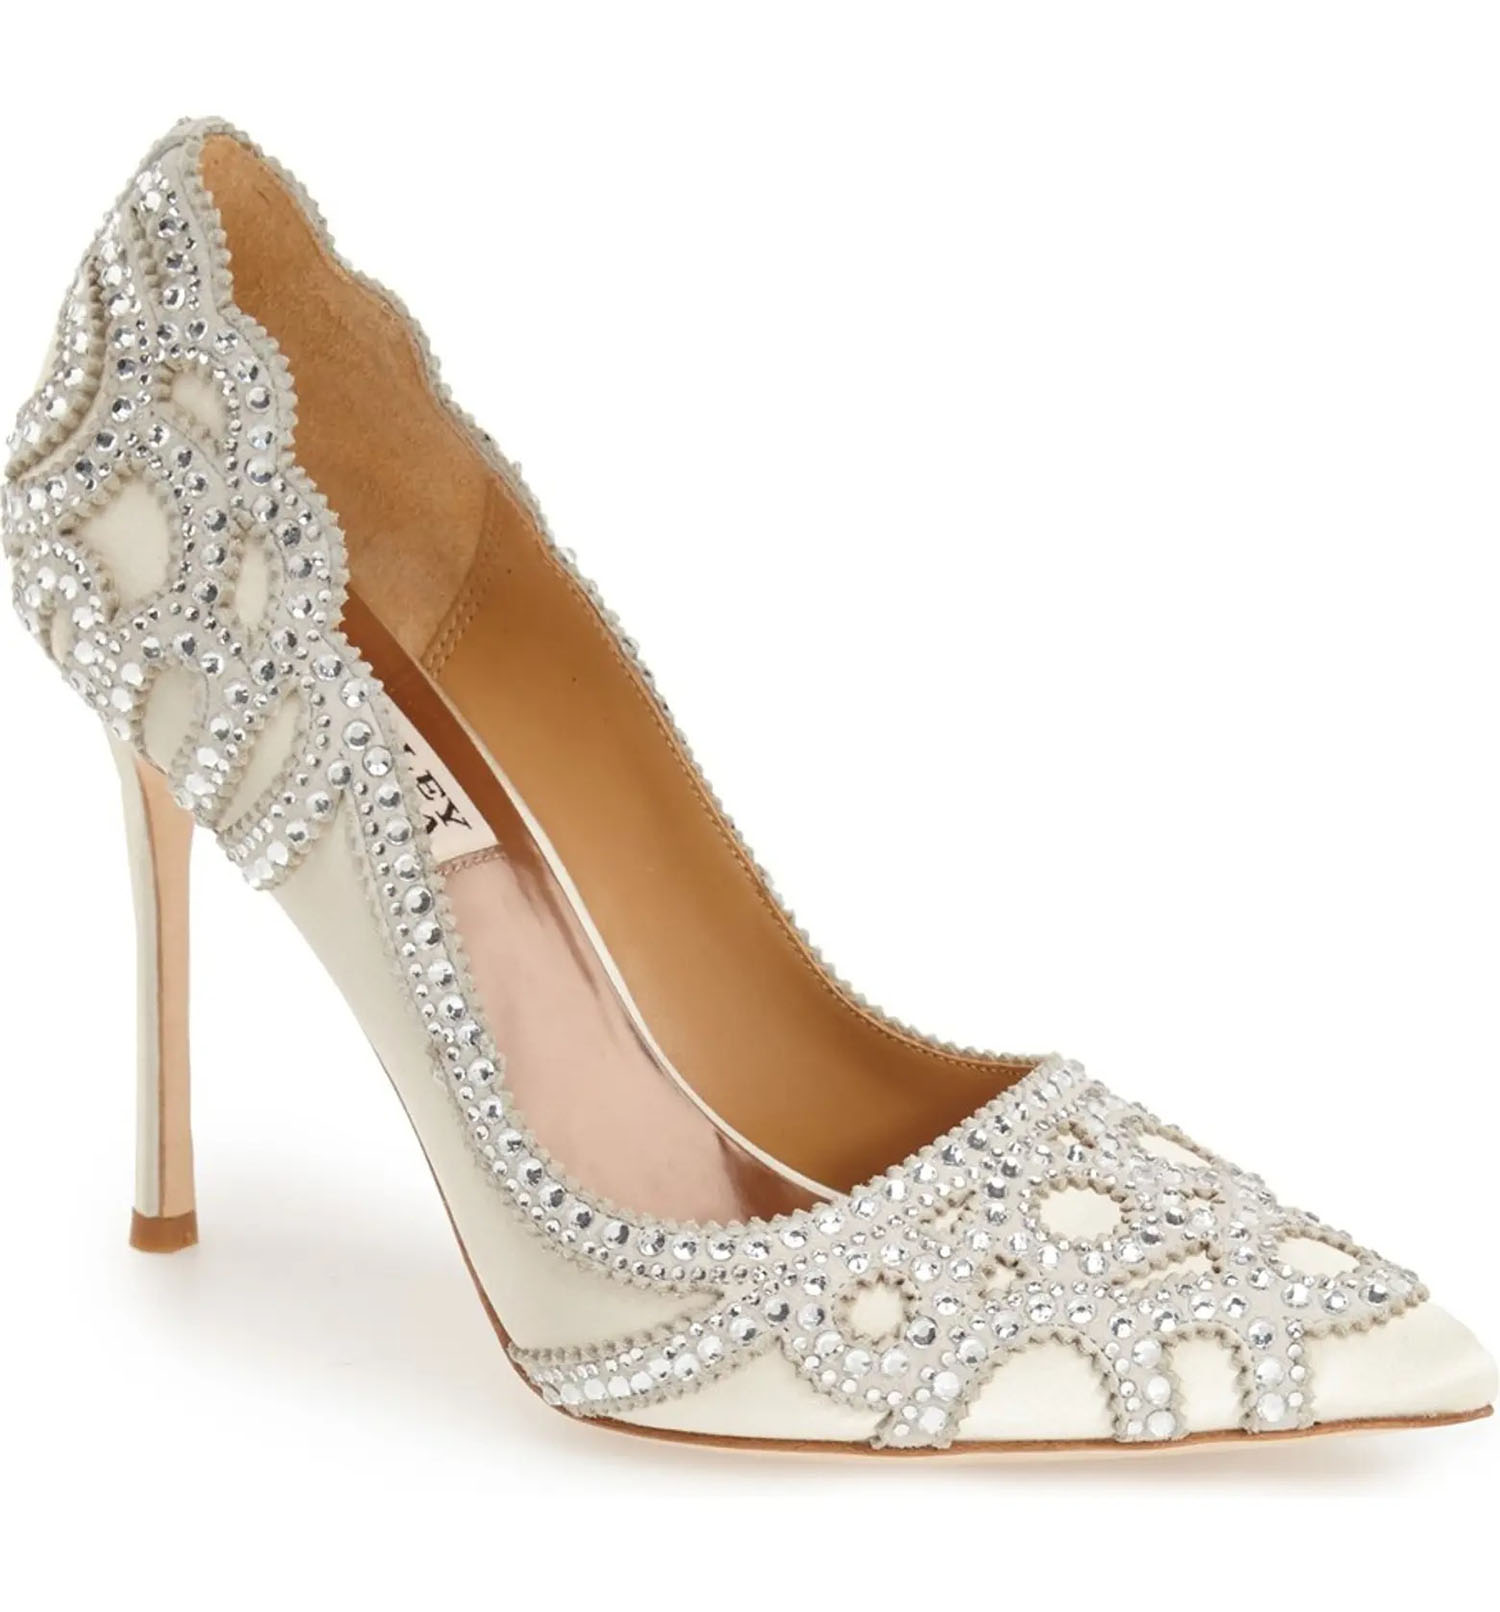 crystal dotted Badgley Mischka scalloped heel wedding shoes at Nordstrom